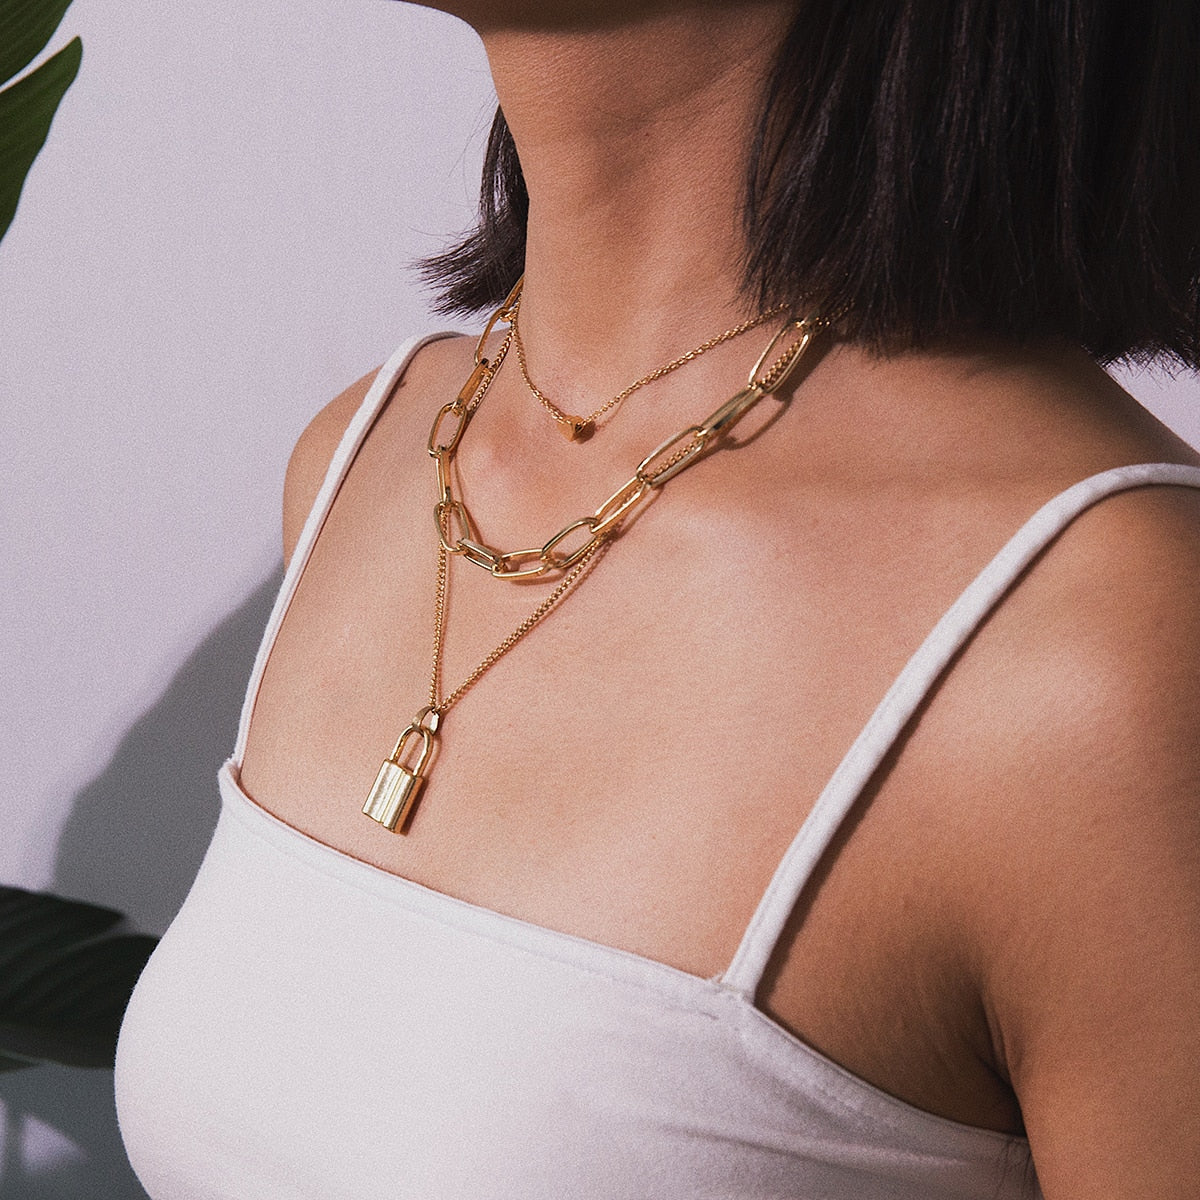 Multi Layer Lover Lock Pendant Choker Necklace - ALFSIXTYONE